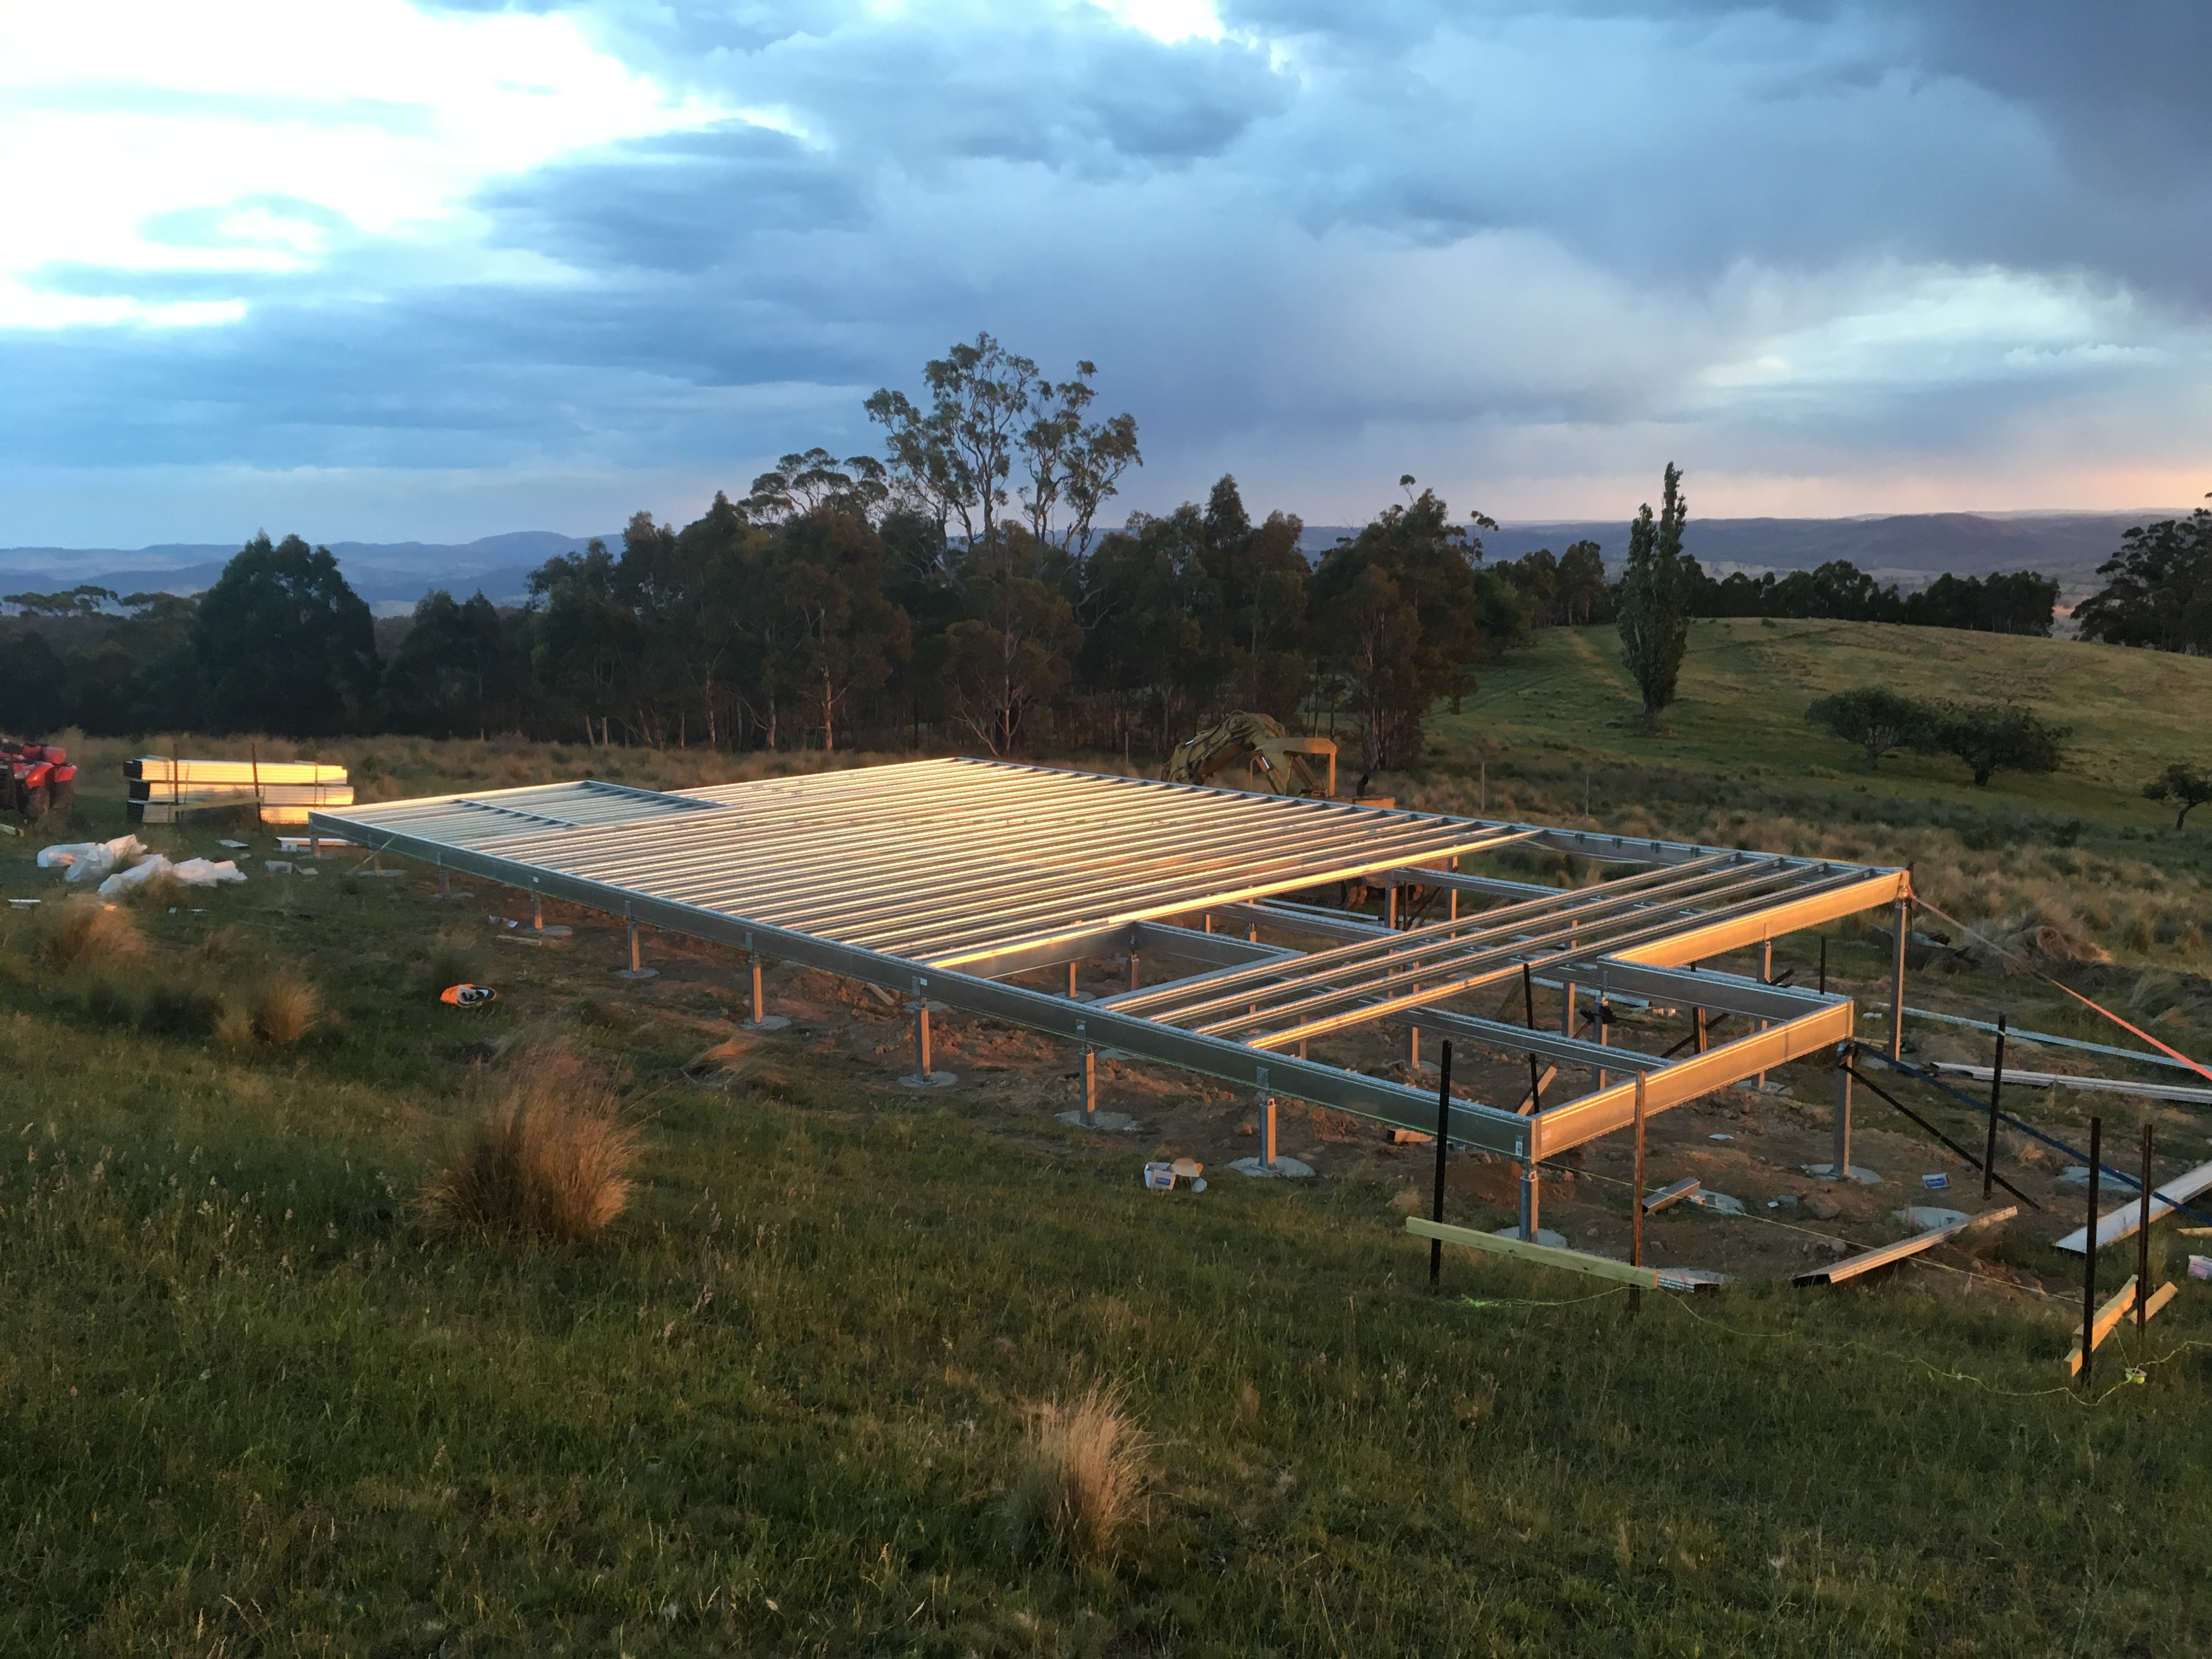 Boxspan floor frame nearing completion by owner builder on a sloping site